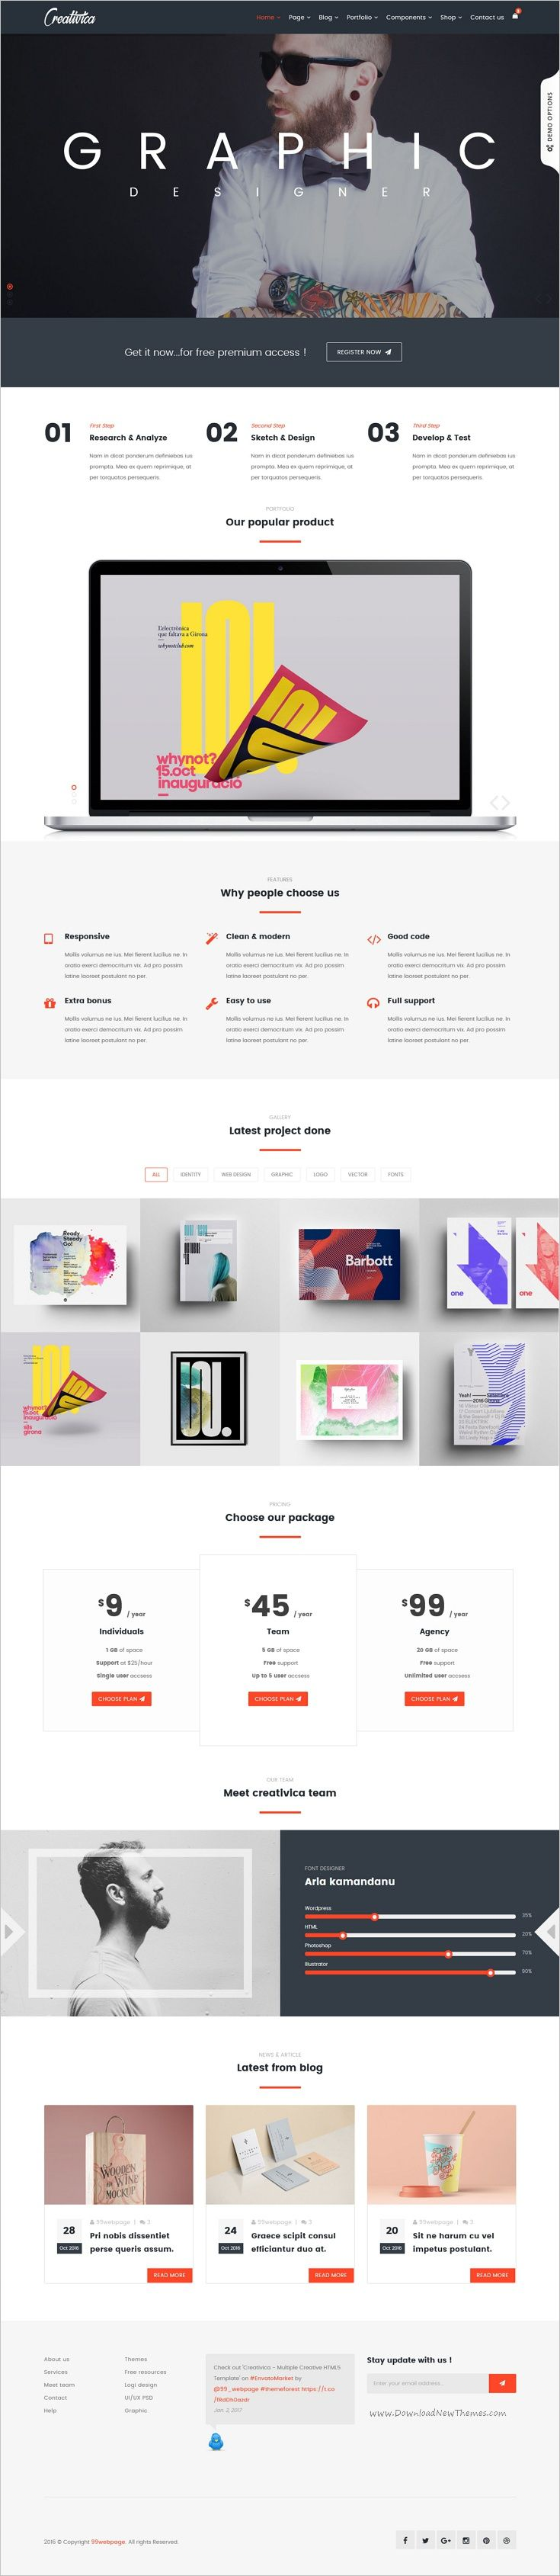 unique html templates nulled gift professional resume examples